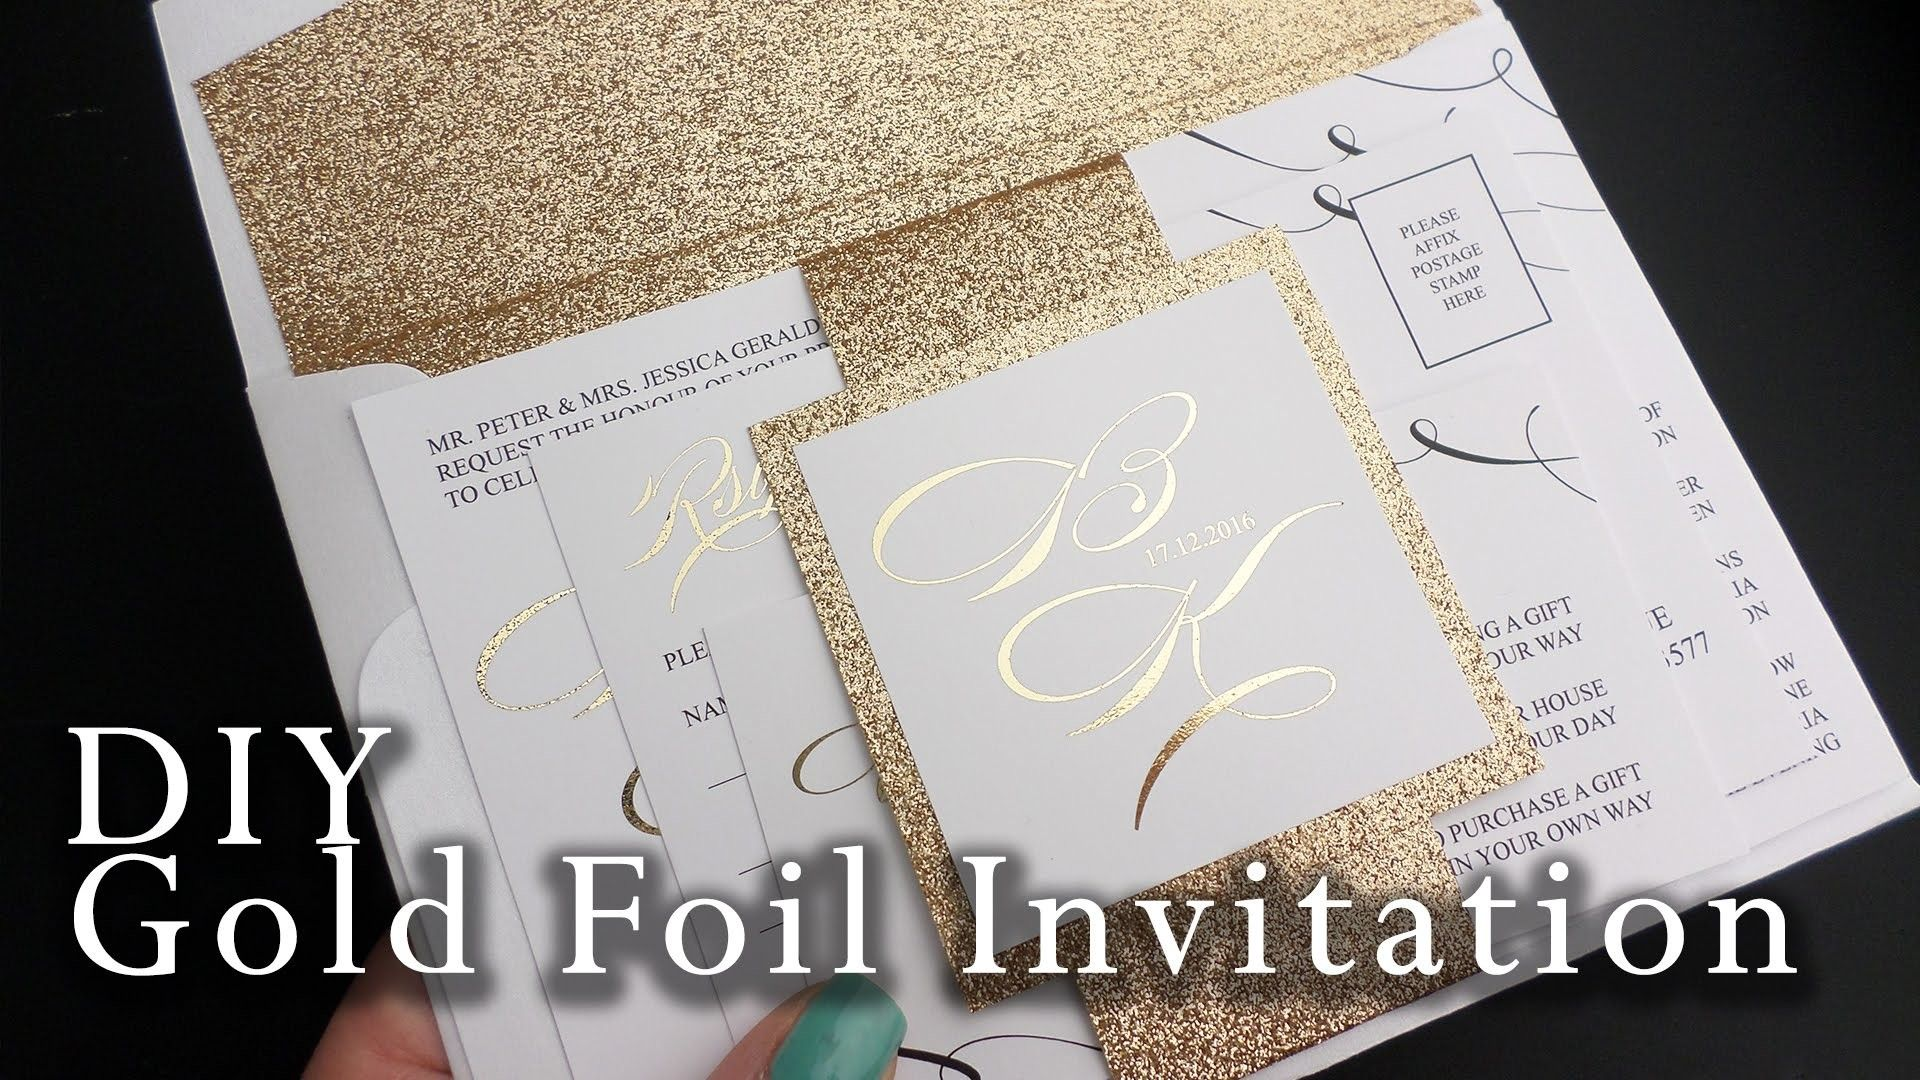 How to make your own gold foil belly band wedding invitation | Belly ...